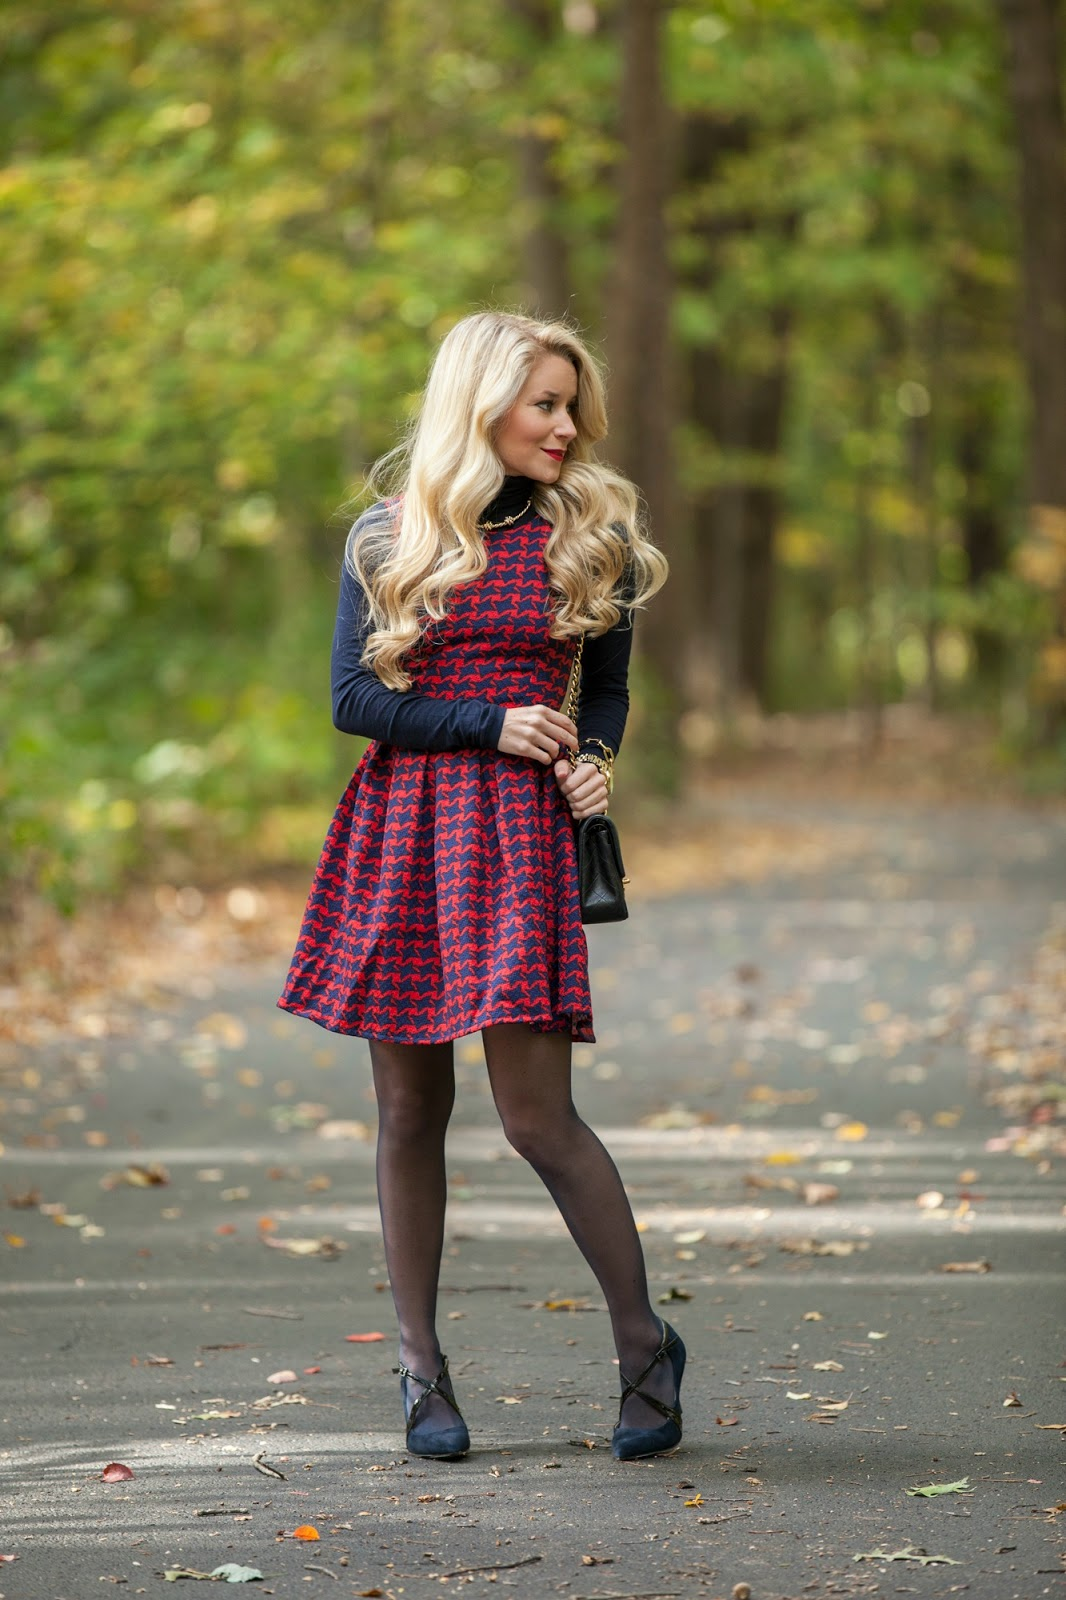 Red Amp Navy Houndstooth Dress Welcome To Olivia Rink